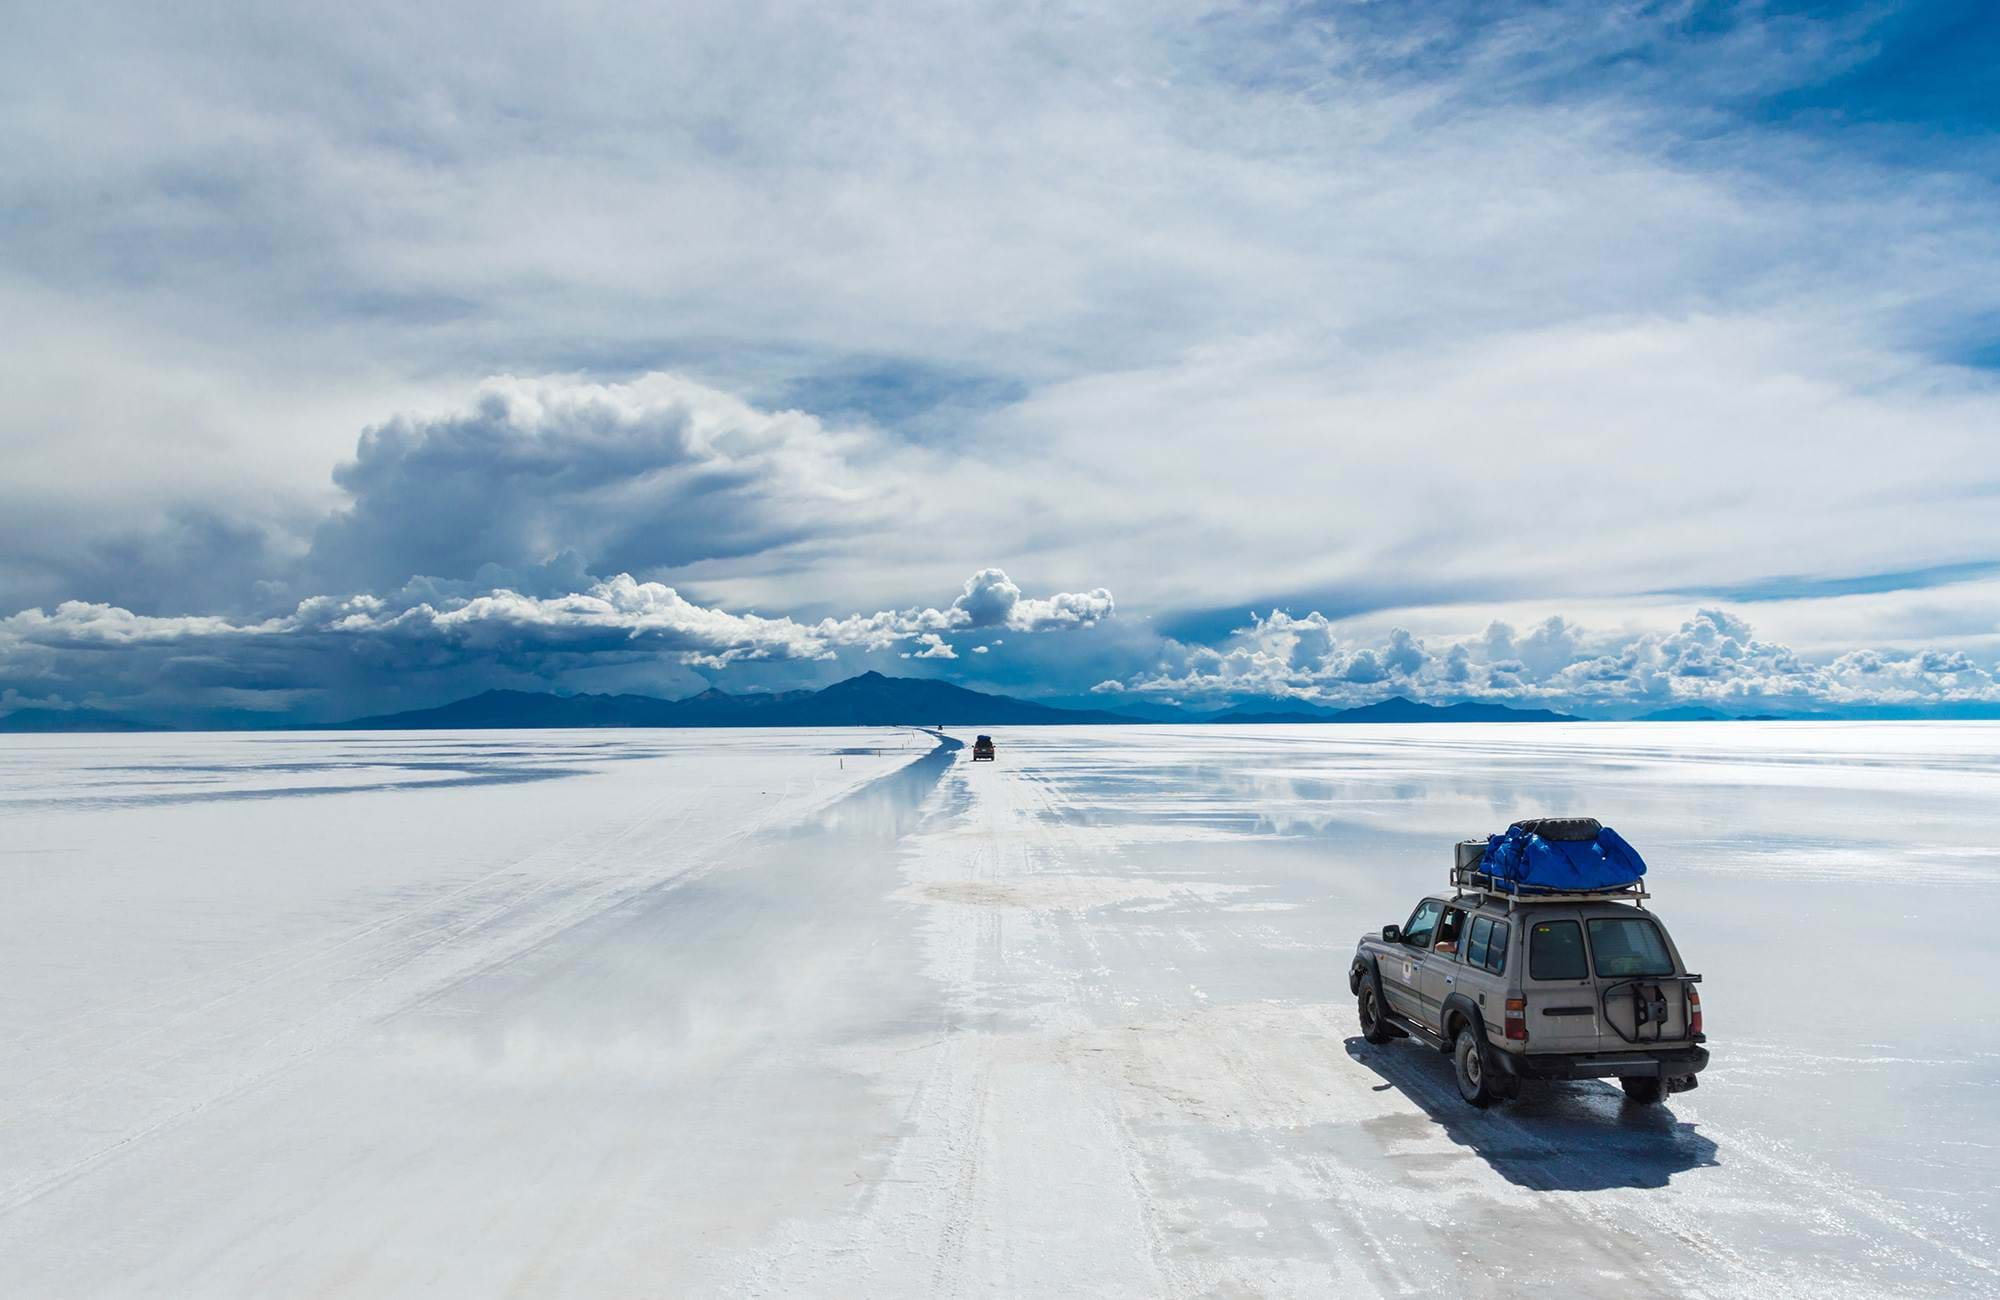 bolivia-salar-de-uyuni-of-road-cars-driving-in-the-white-landscape